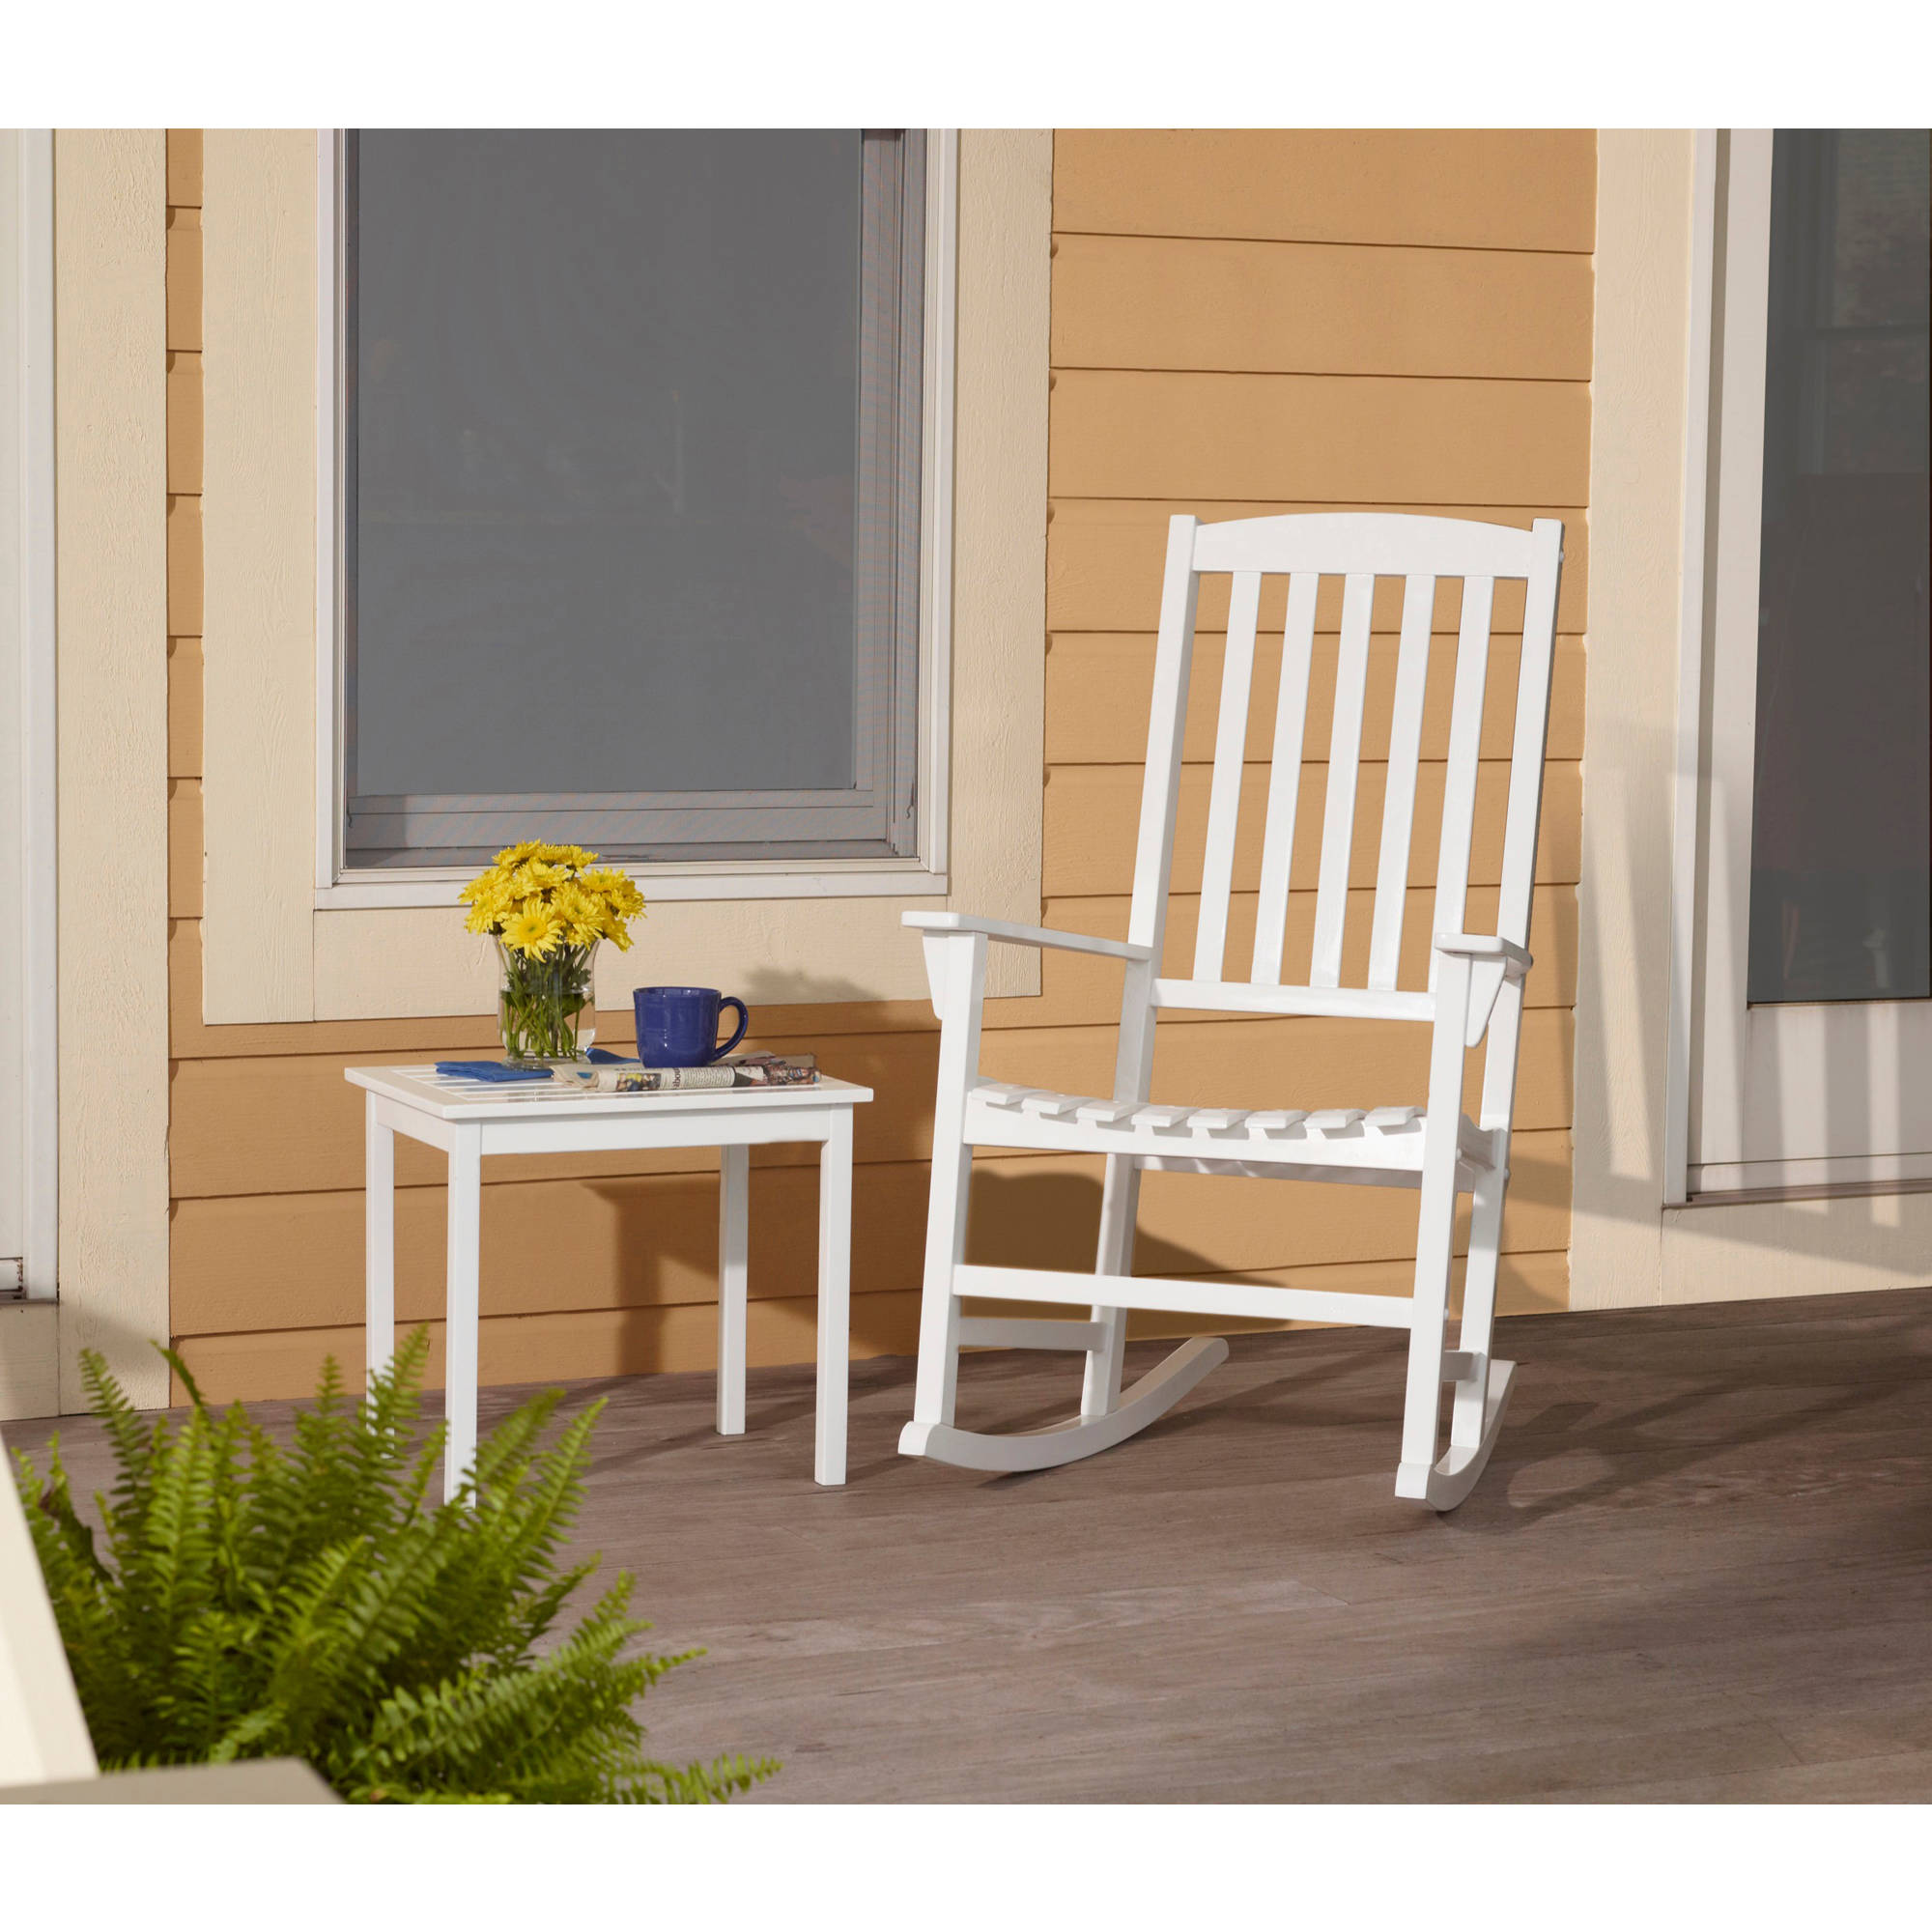 Mainstays Outdoor Rocking Chair, Multiple Colors